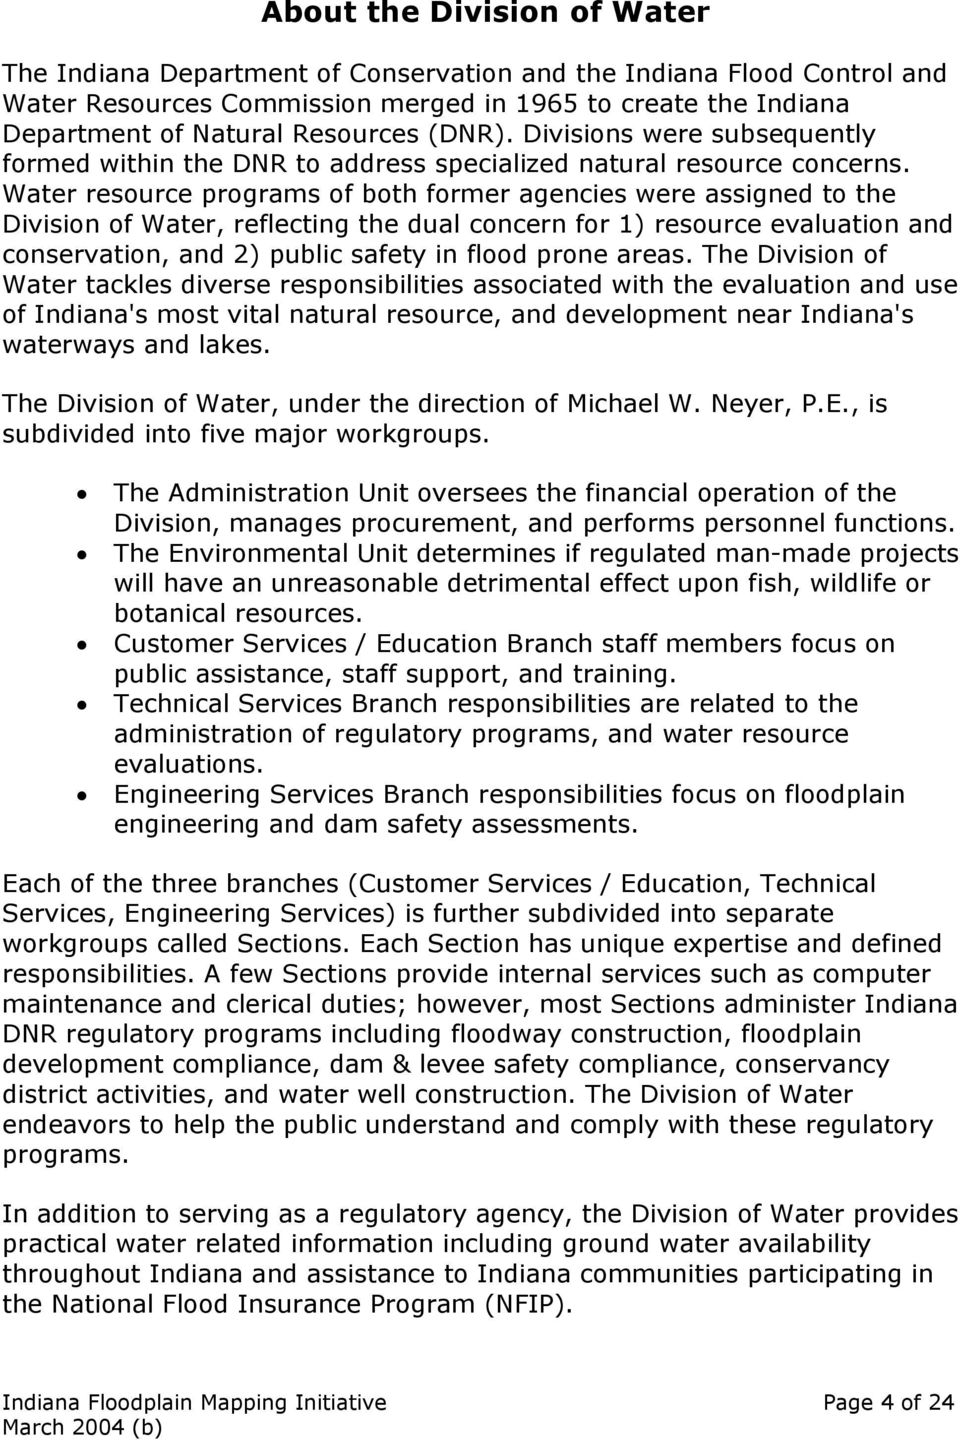 Water resource programs of both former agencies were assigned to the Division of Water, reflecting the dual concern for 1) resource evaluation and conservation, and 2) public safety in flood prone